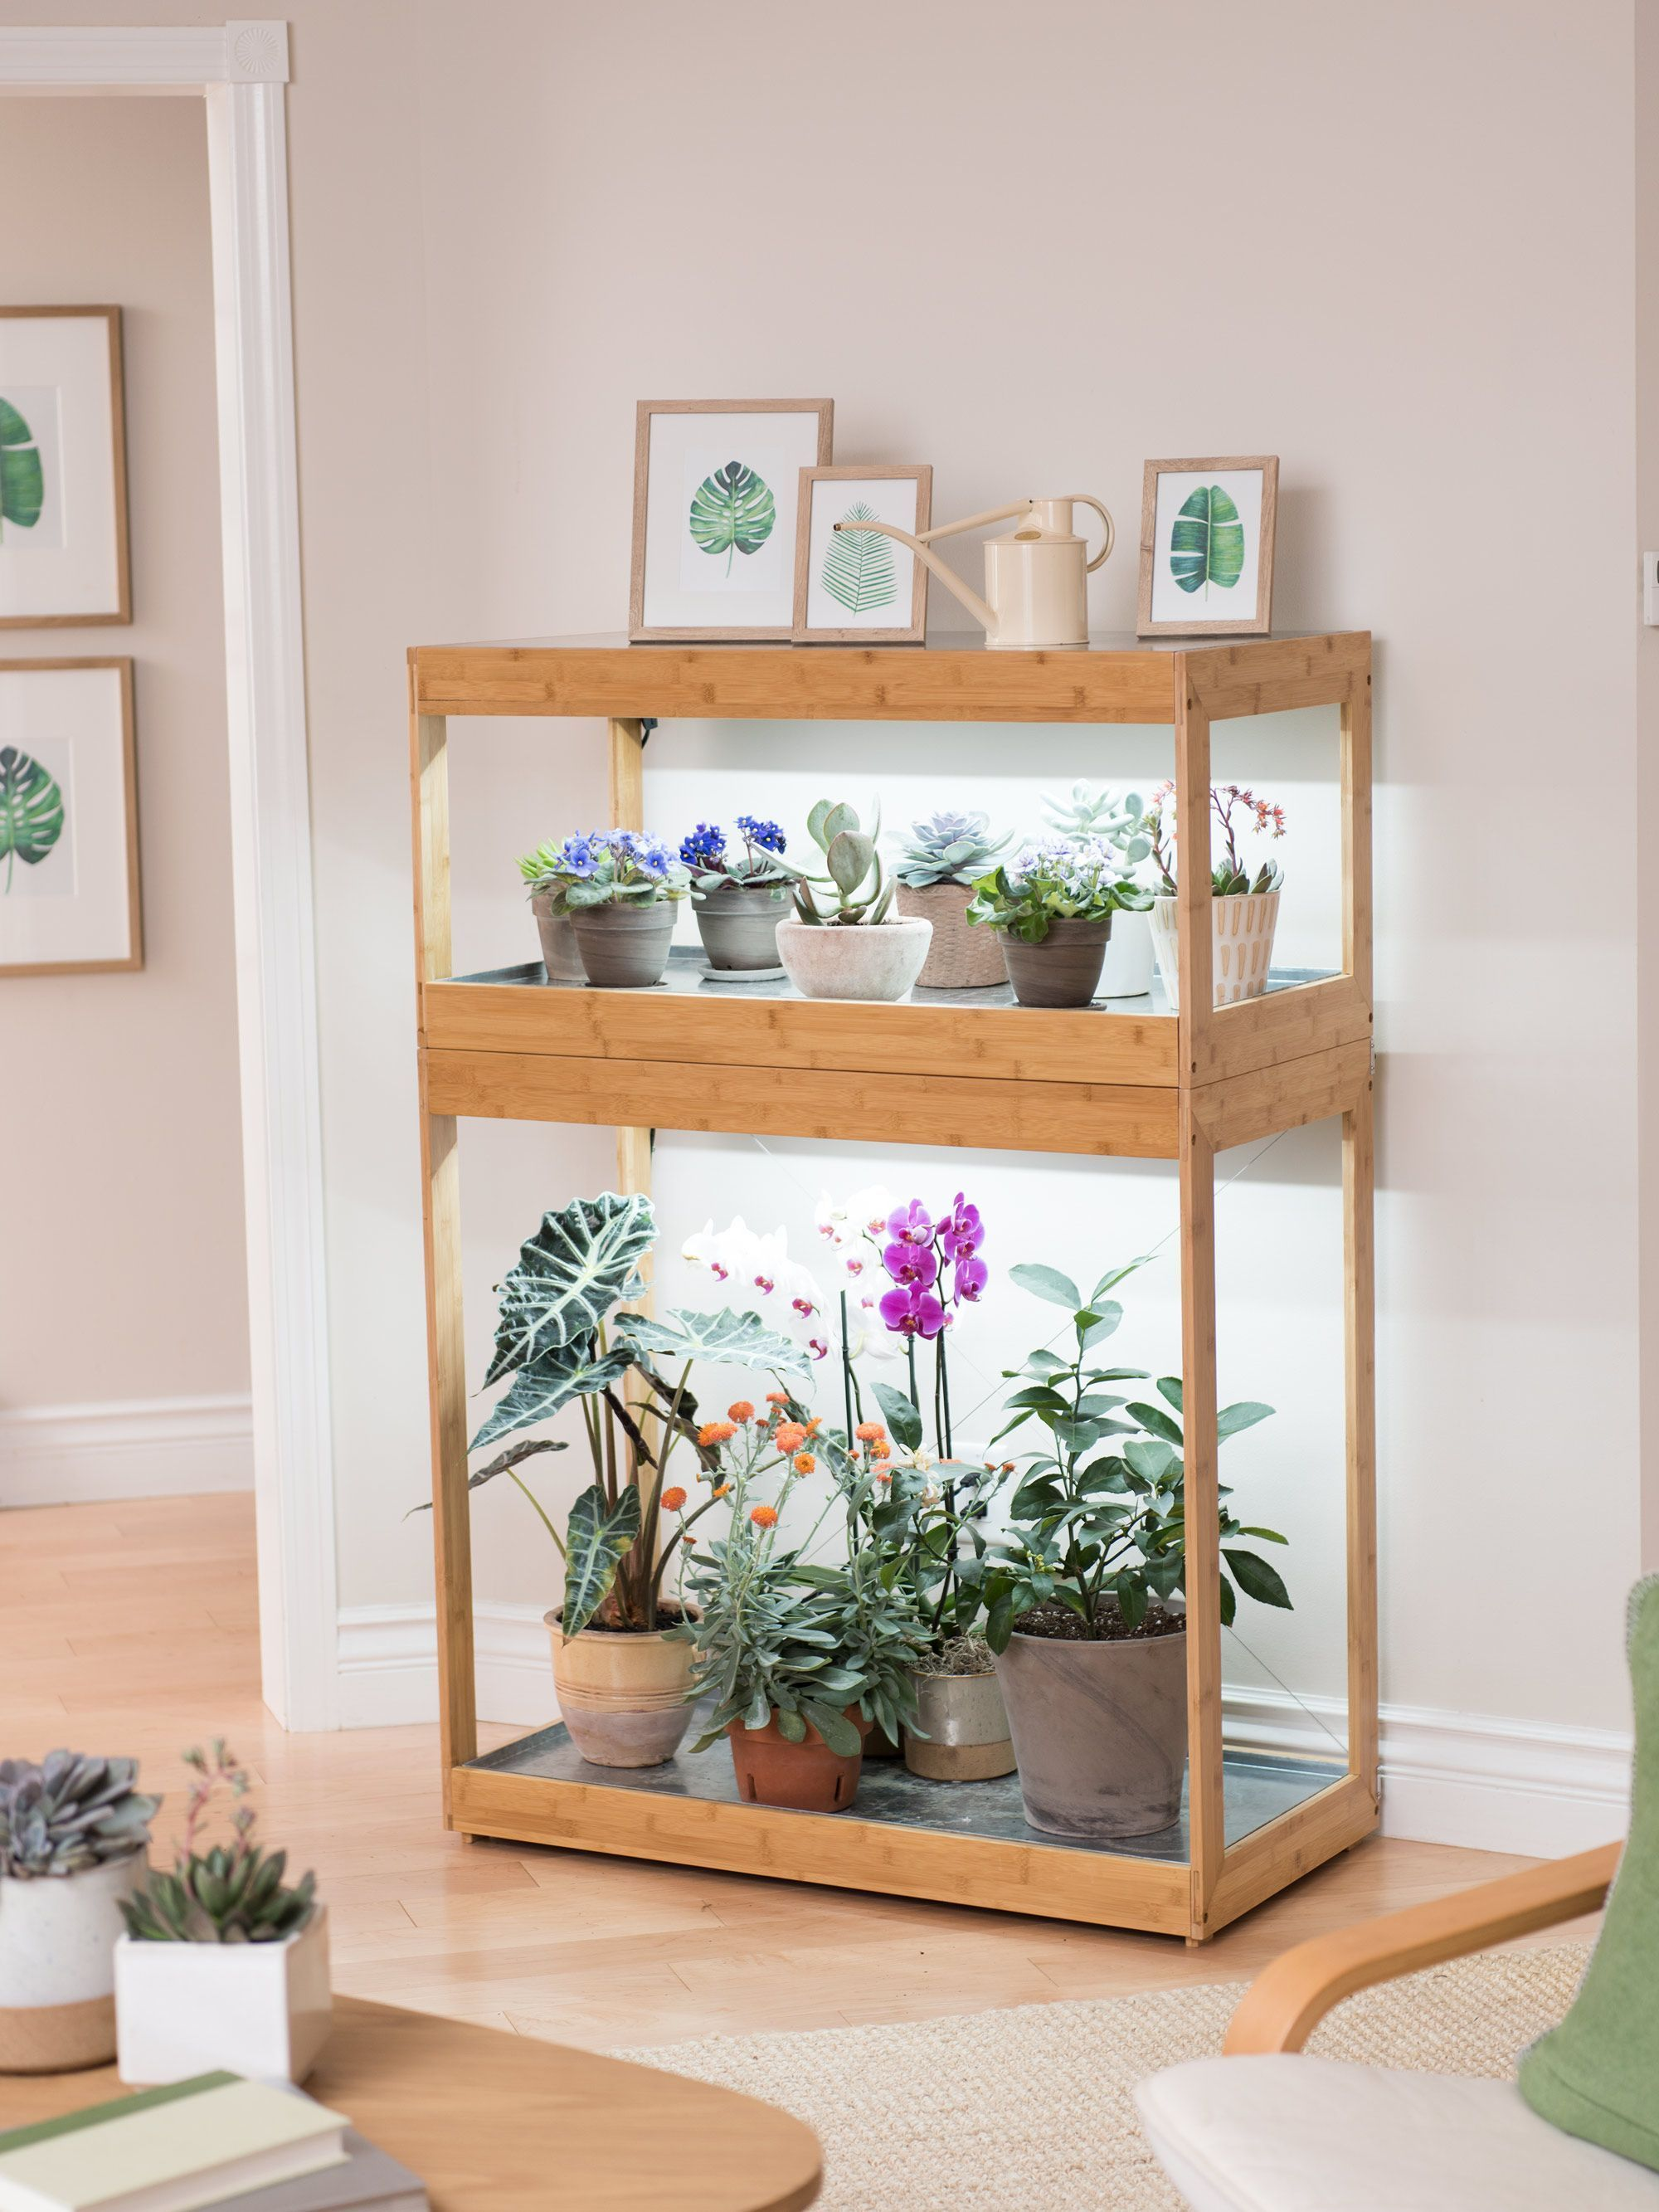 The Home Led Garden Has Two Tiers Of Versatile Growing Space Your Low Growing Herbs And Plants Can Go U Jardin Intérieur Planter Bambou Tablettes Pour Plantes